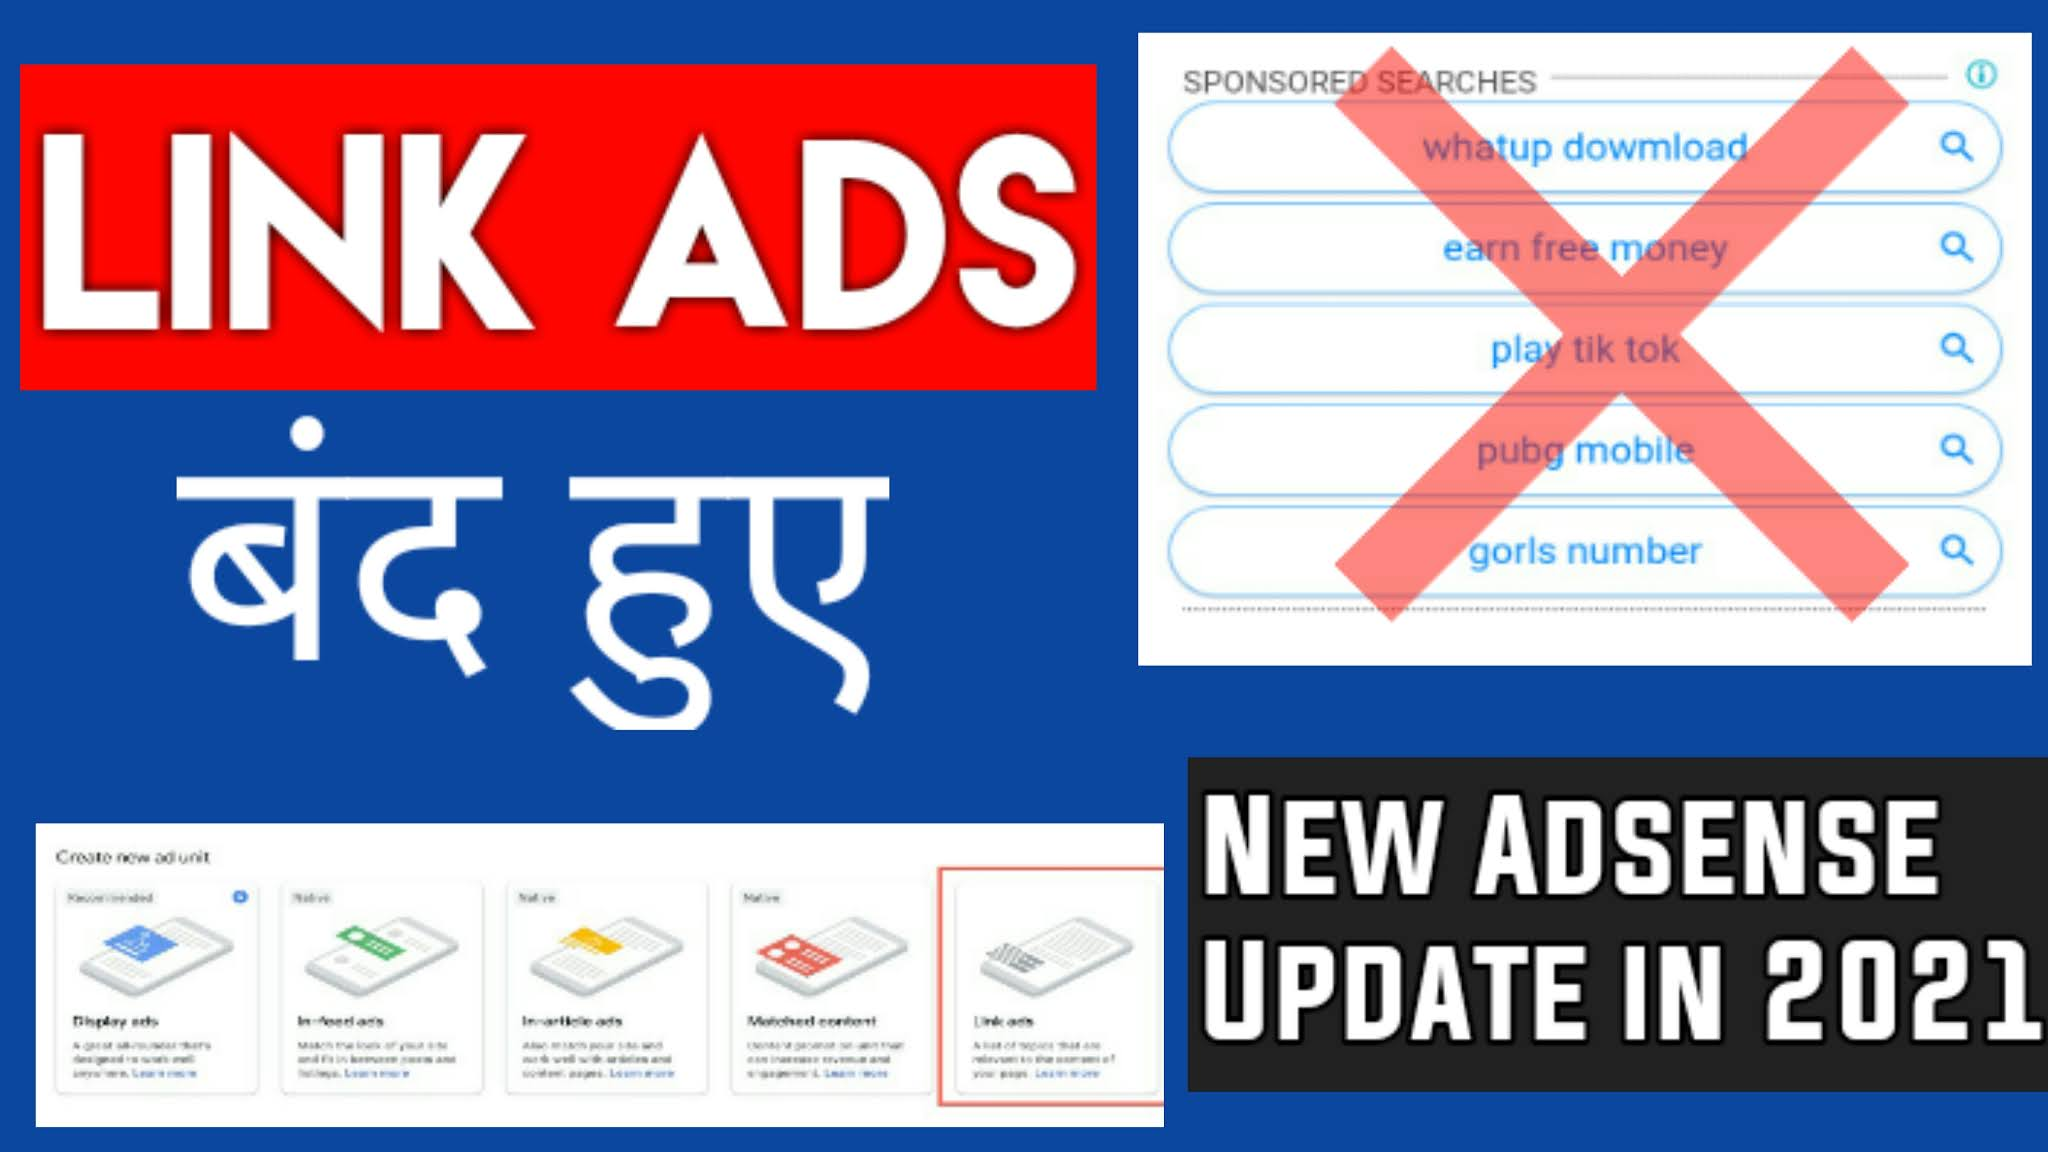 Link ads will be retired soon  New Adsense Update 2021